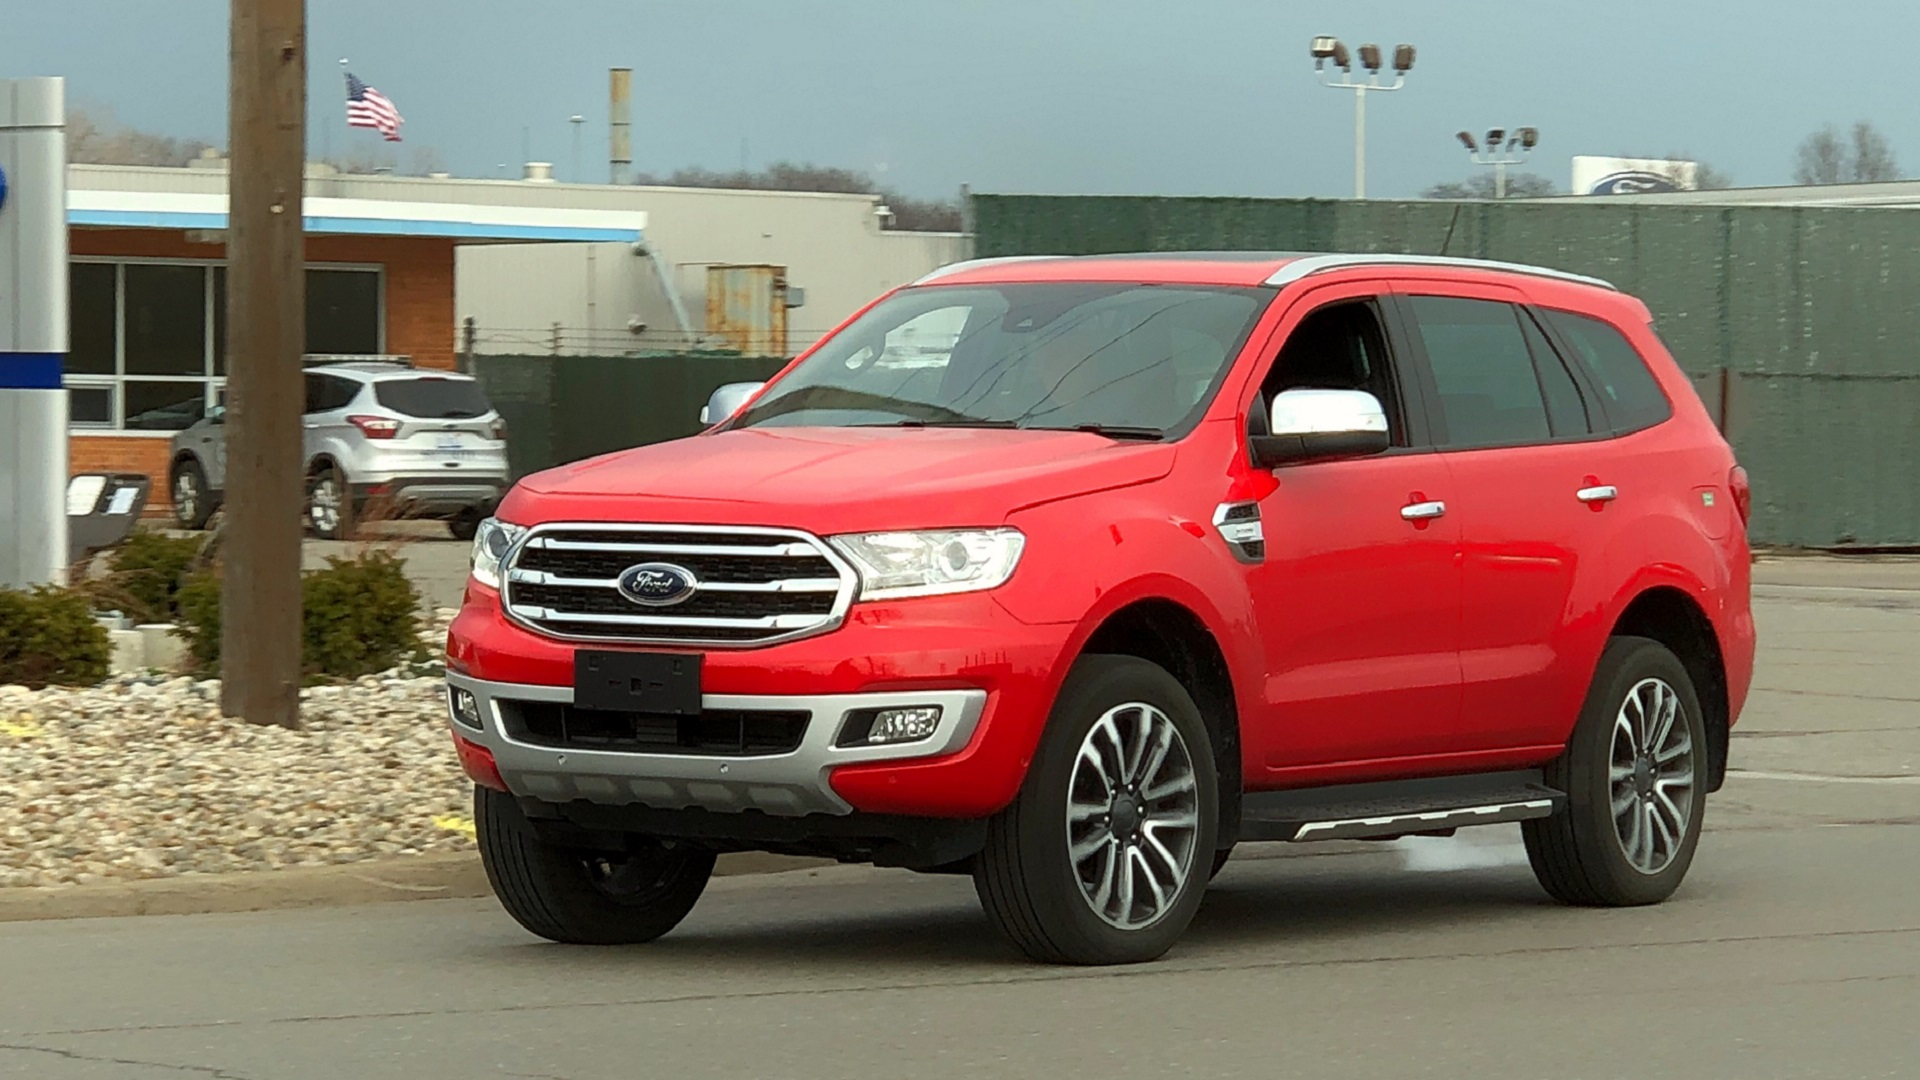 Exclusive Ford Everest Caught Roaming Near Ford Hq As